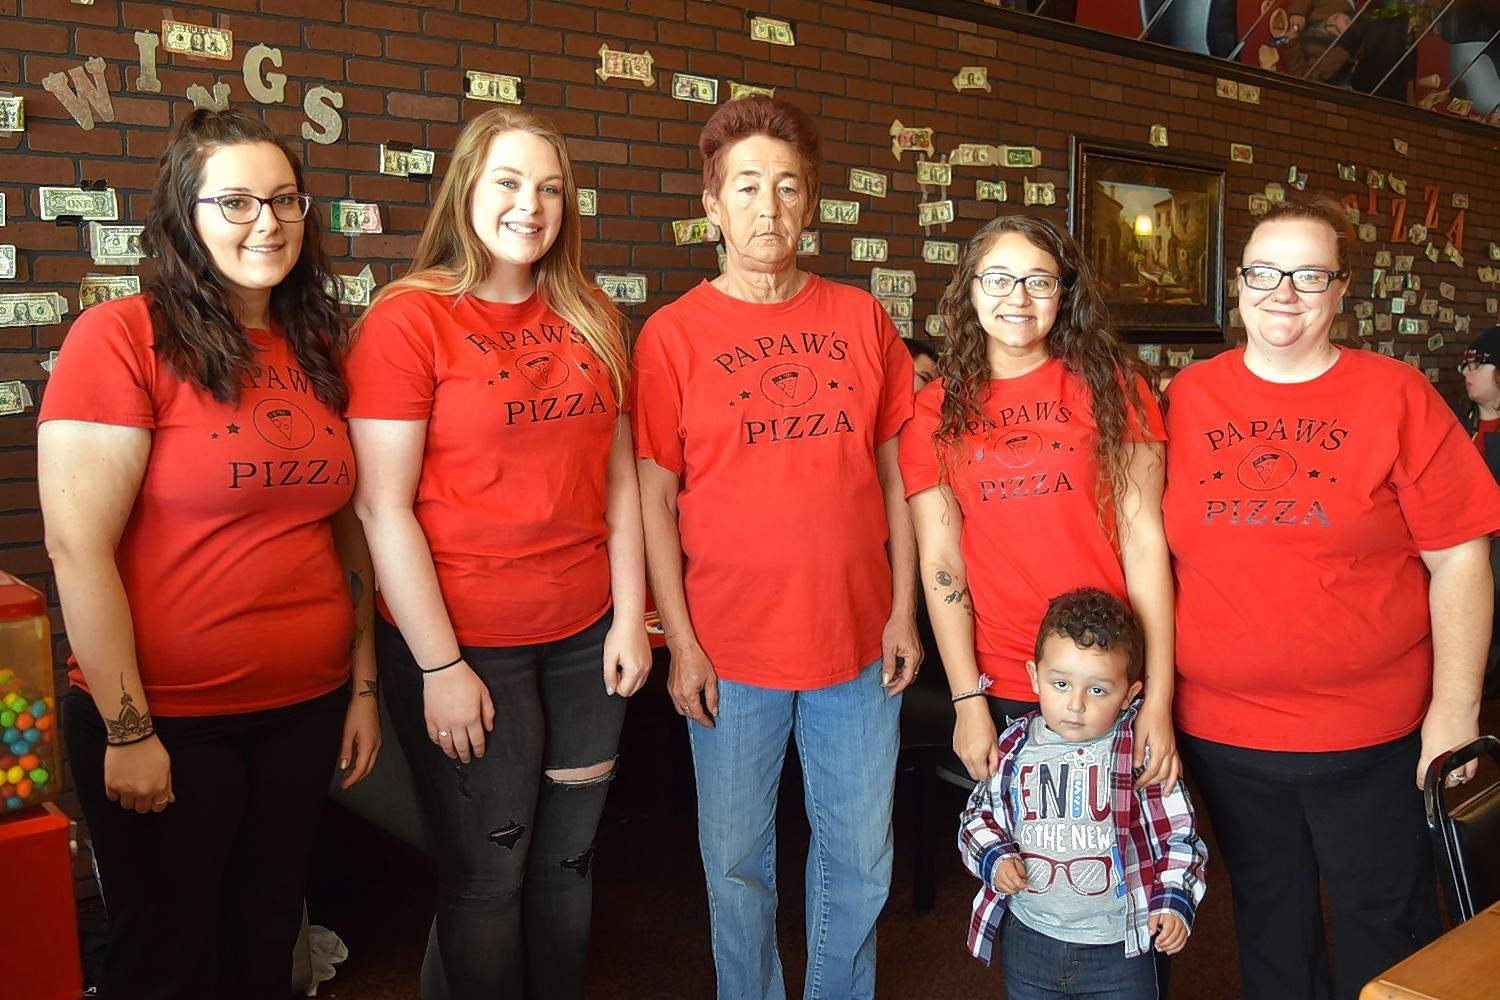 The wait staff at Papaw's Pizza had a brief moment during the free Thanksgiving buffet to stand together for a pic. From left are Taylor Patterson, Angela Colby, Elspeth Newsome, Brianna Hayes, James Hayes II, and Dana Hayes.